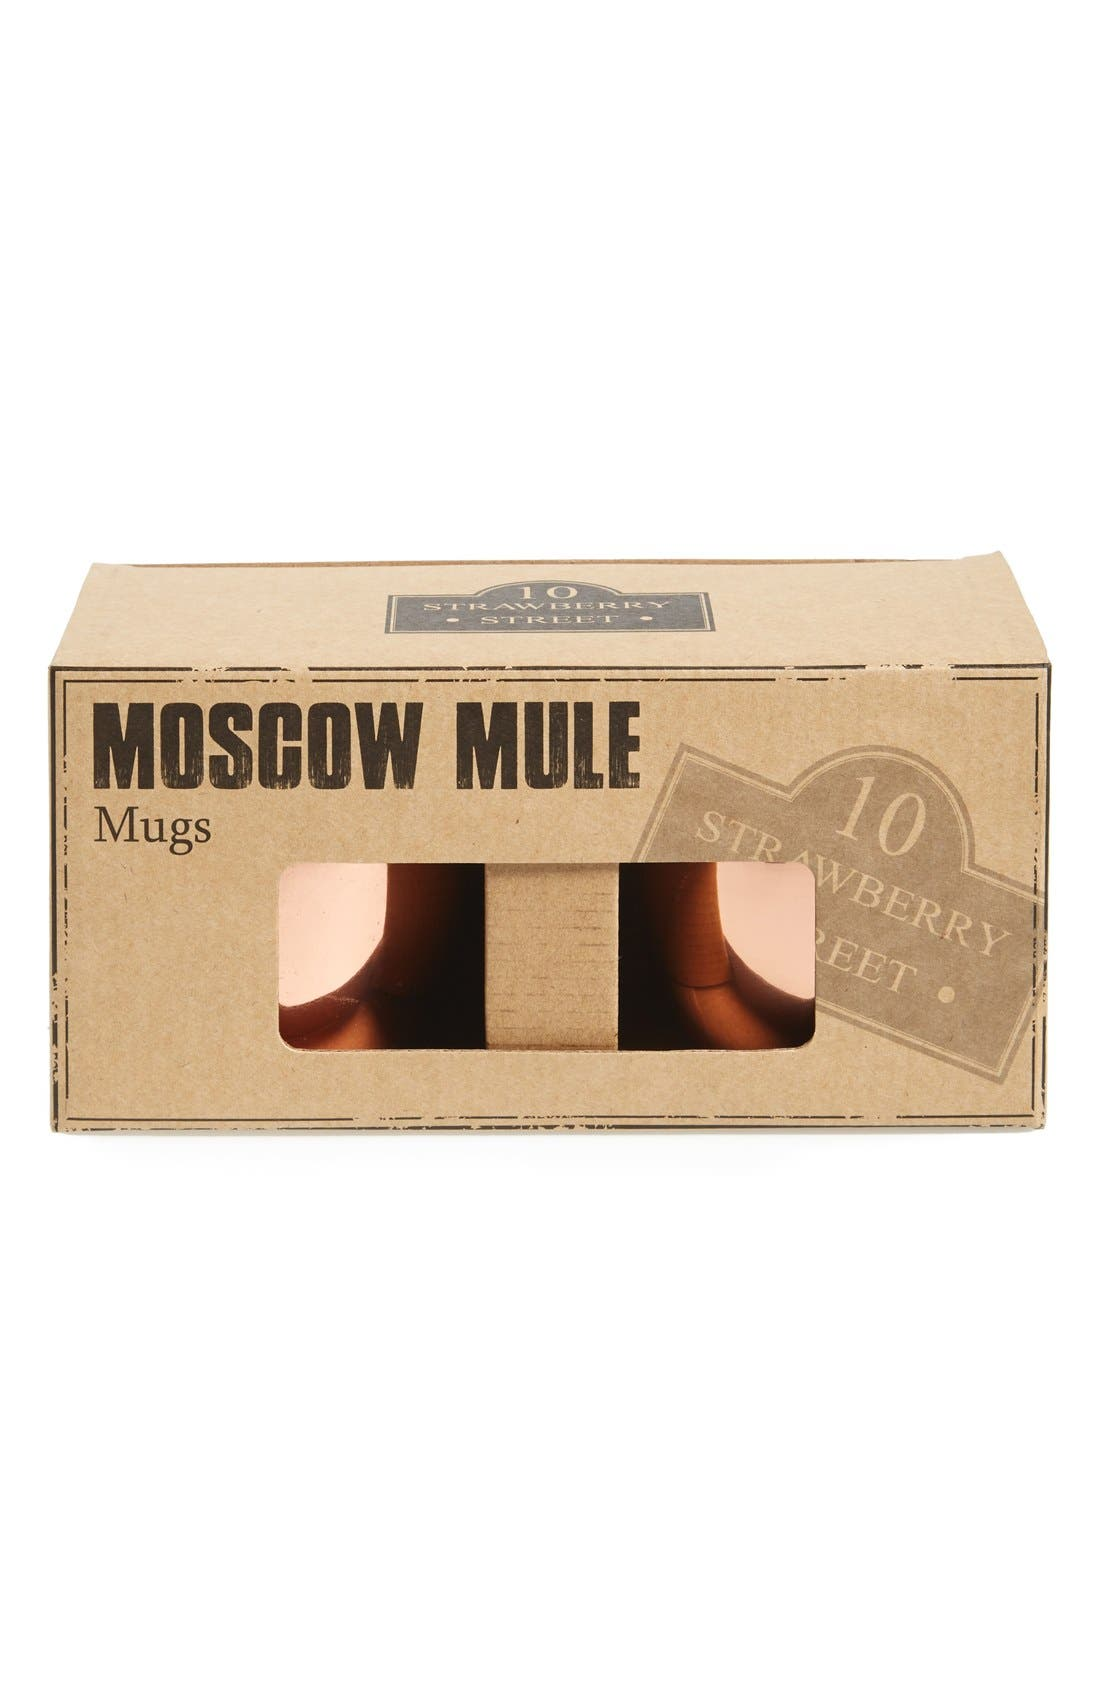 10 STRAWBERRY STREET, 'Moscow Mule' Copper Mugs, Alternate thumbnail 2, color, 220